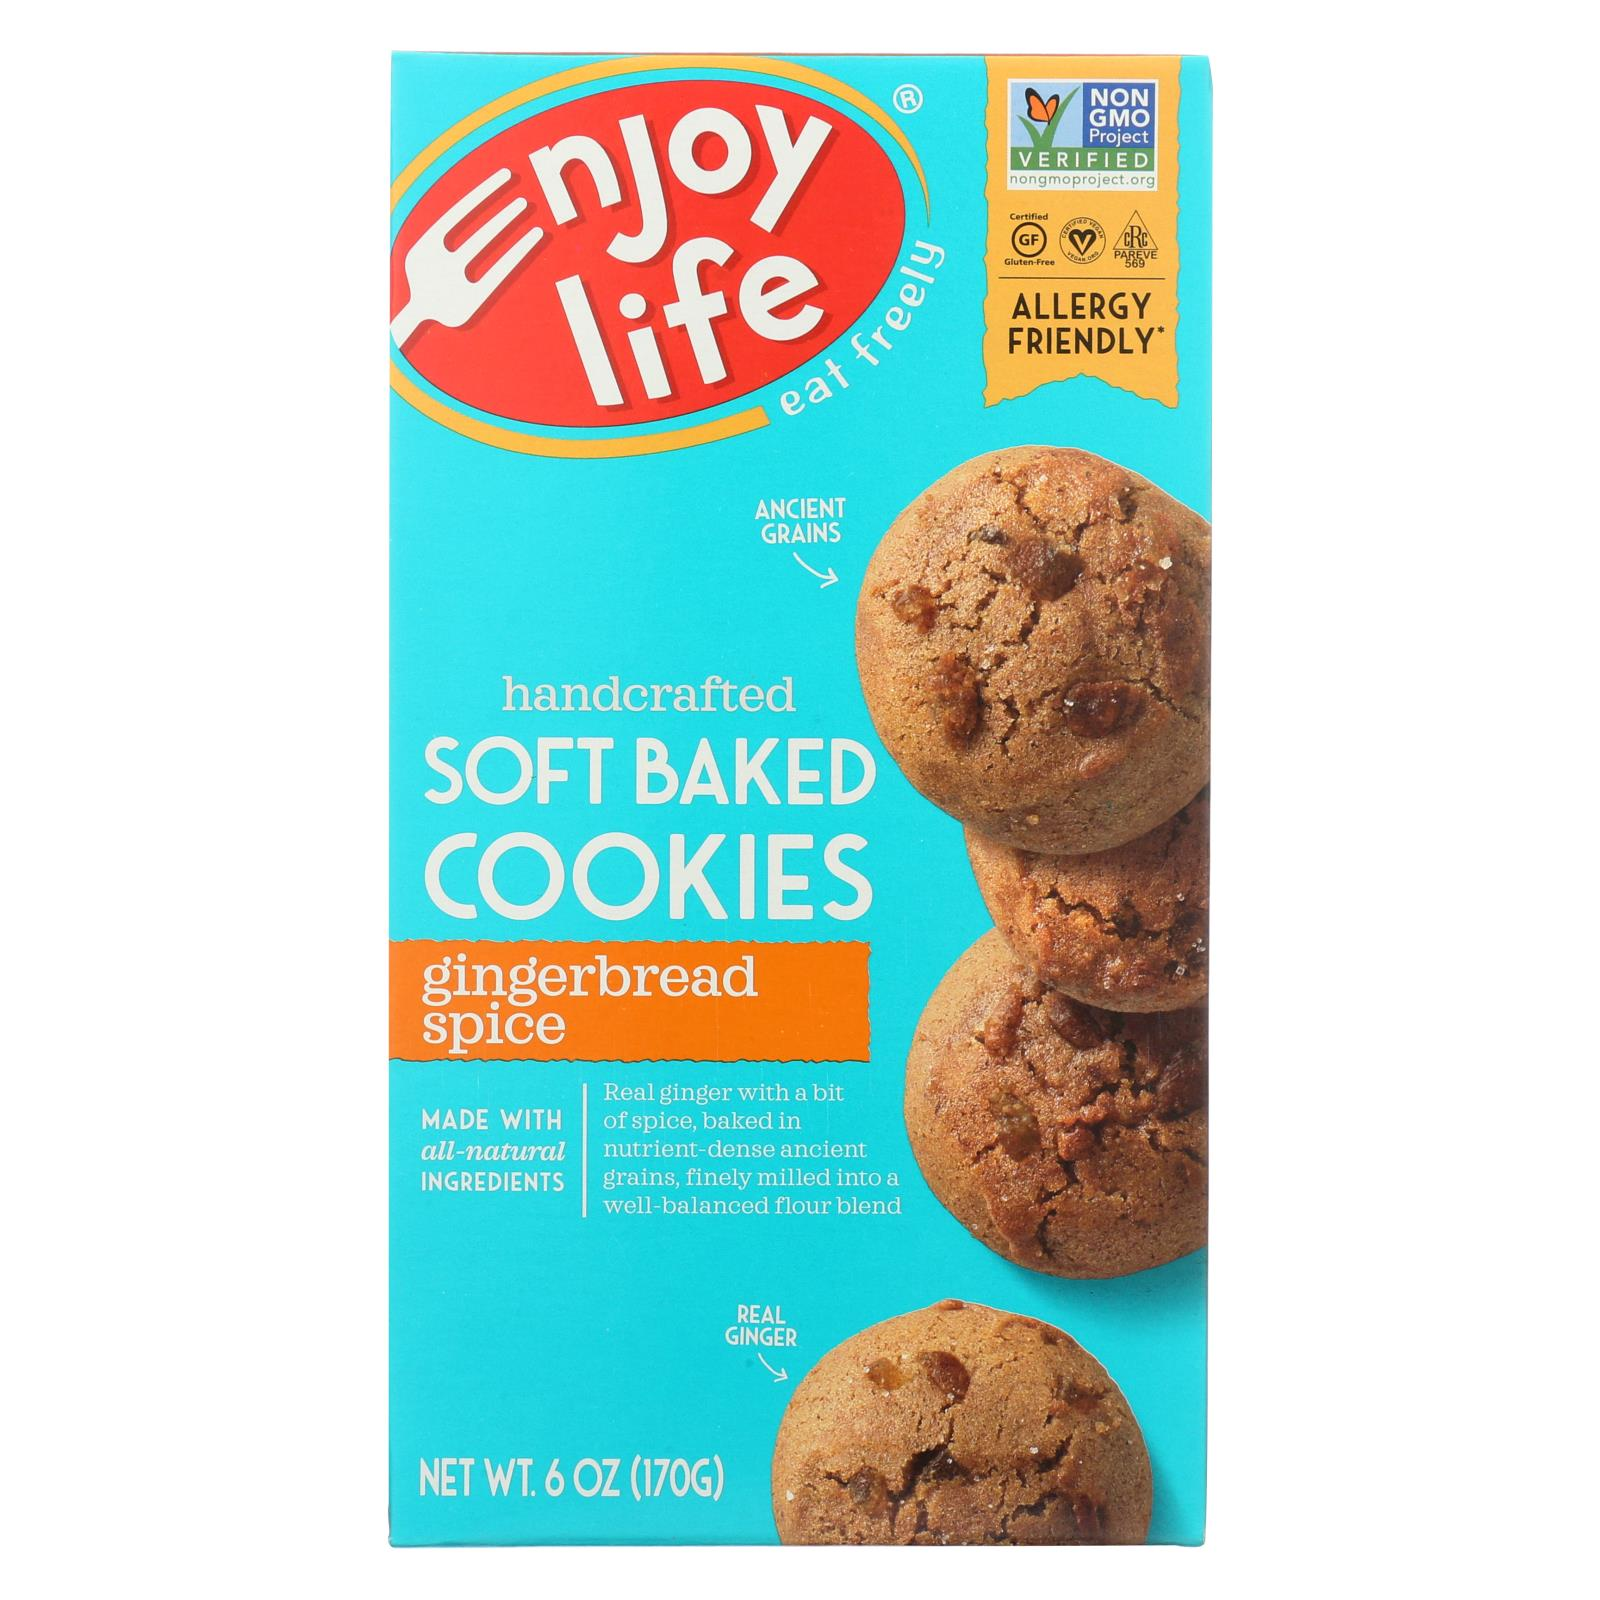 Enjoy Life Cookie Soft Baked Gingerbread Spice Gluten Free 6 Oz Case Of 6 HG0515635